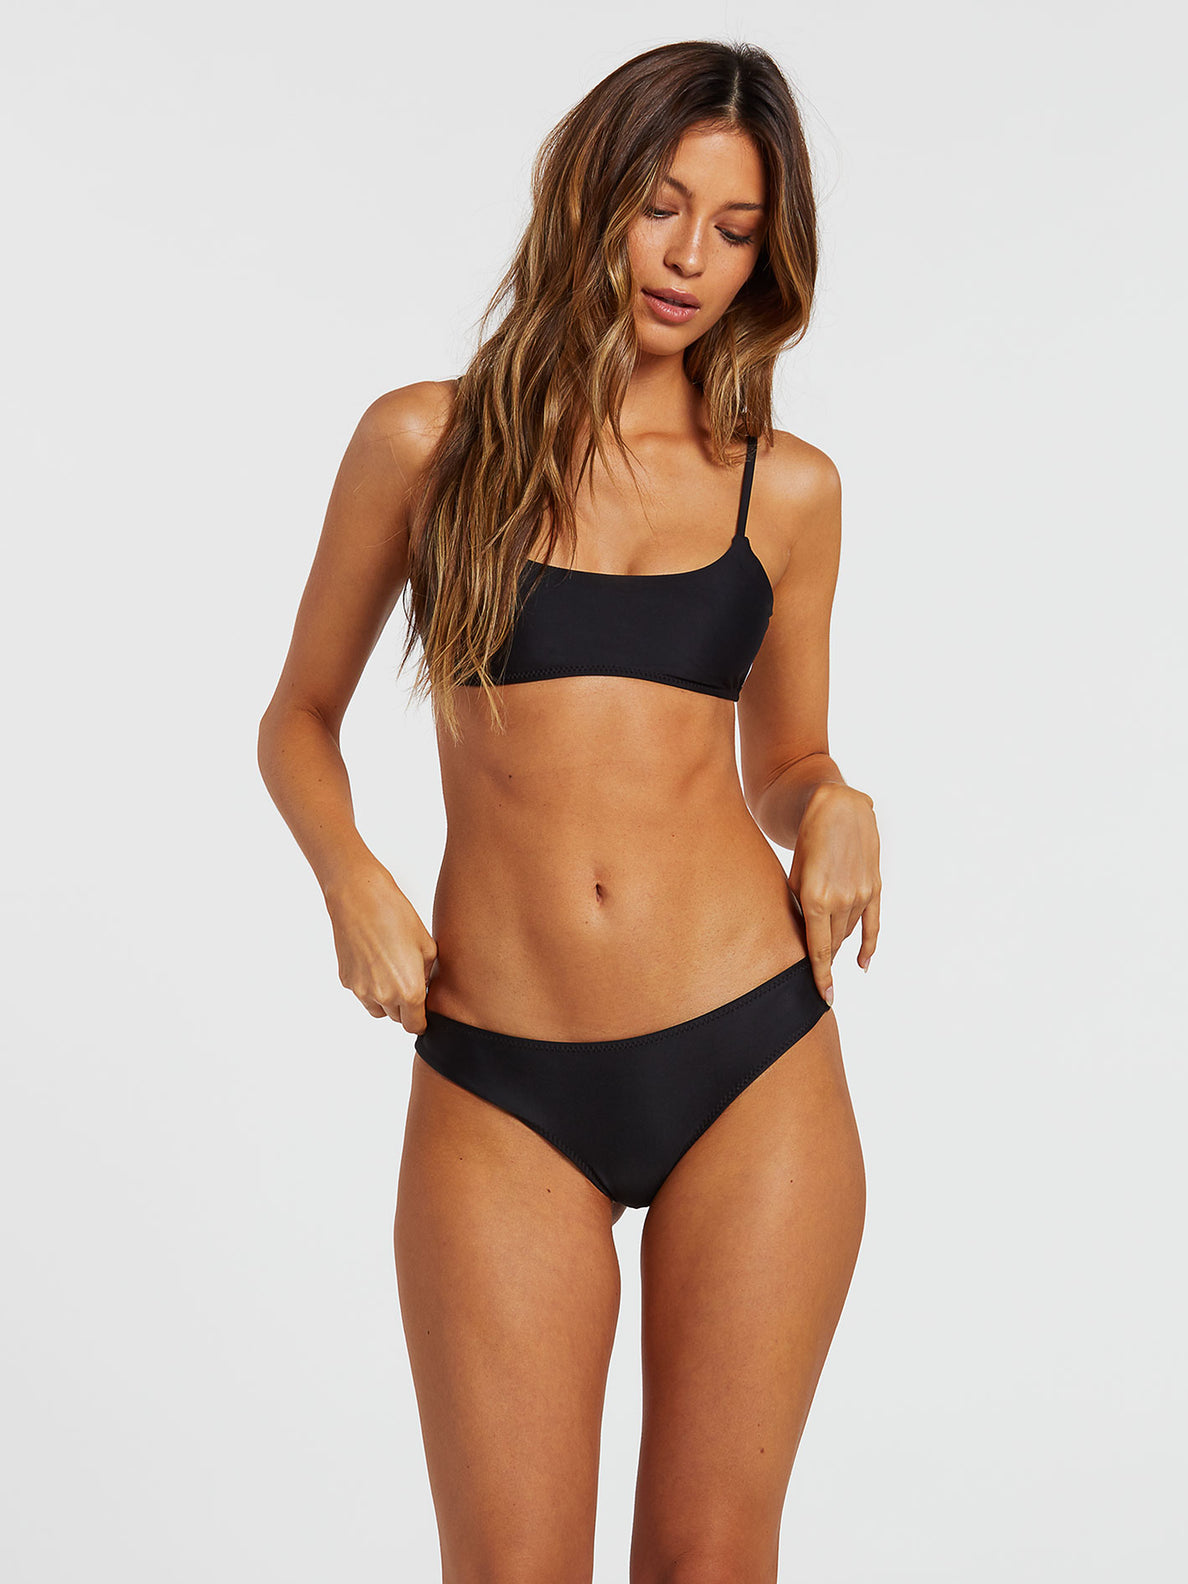 Simply Solid Cheekini Bottom - Black (O2141900_BLK) [F]